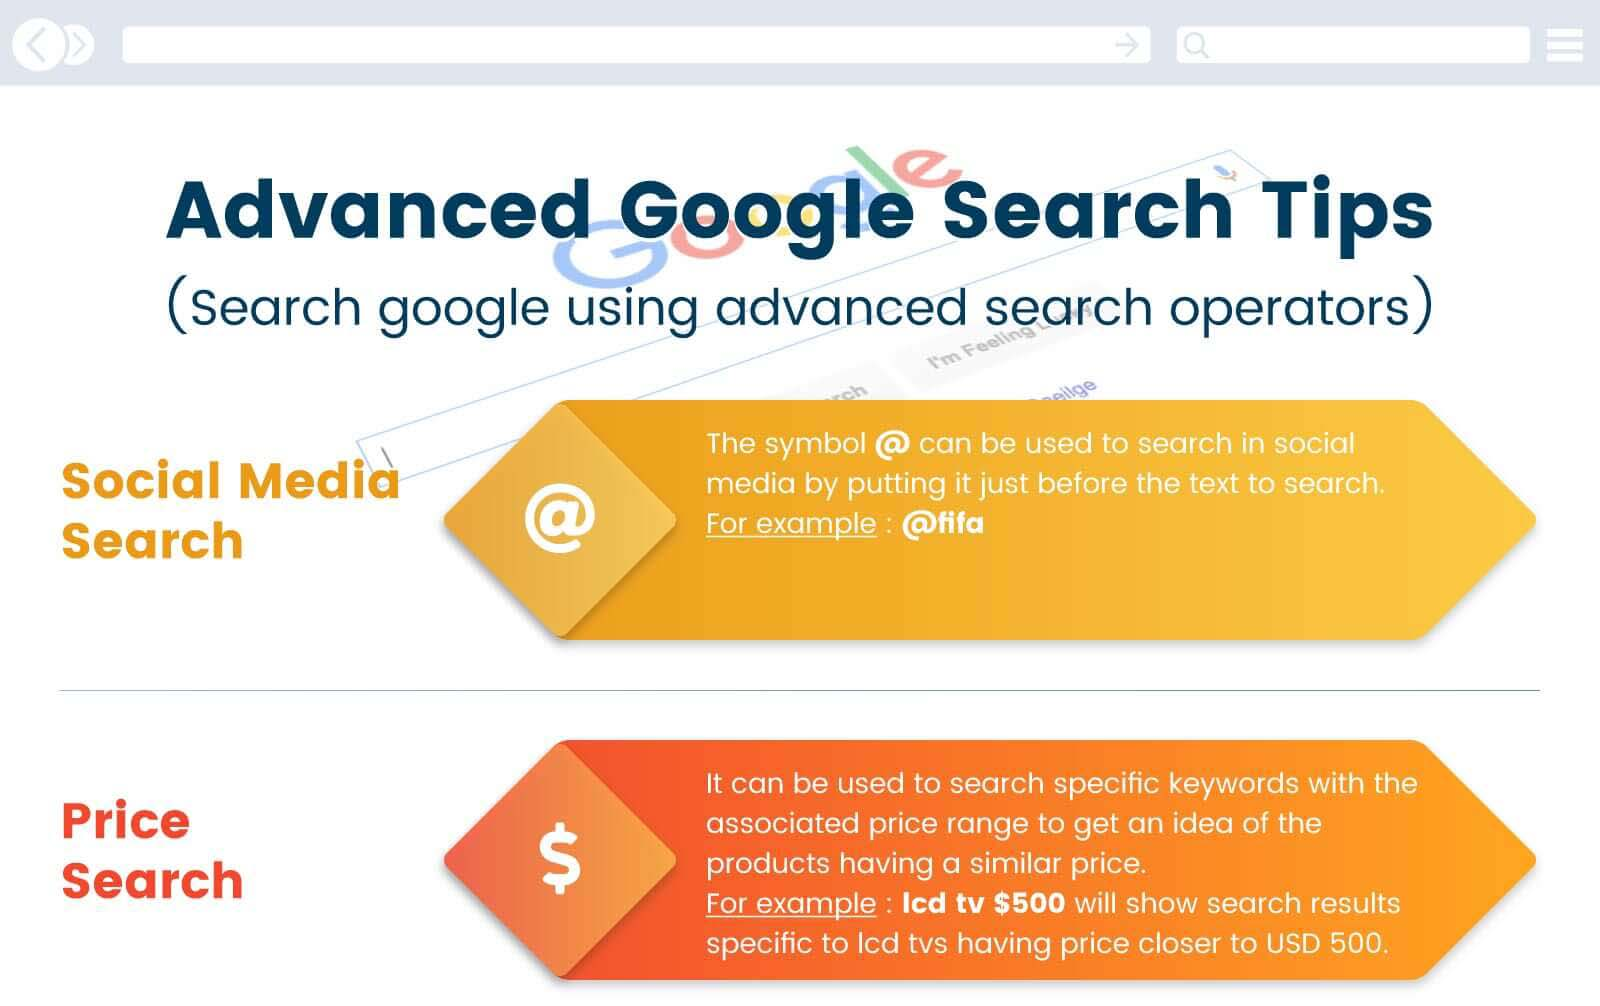 Advanced Google Search Tips | TechnoLush